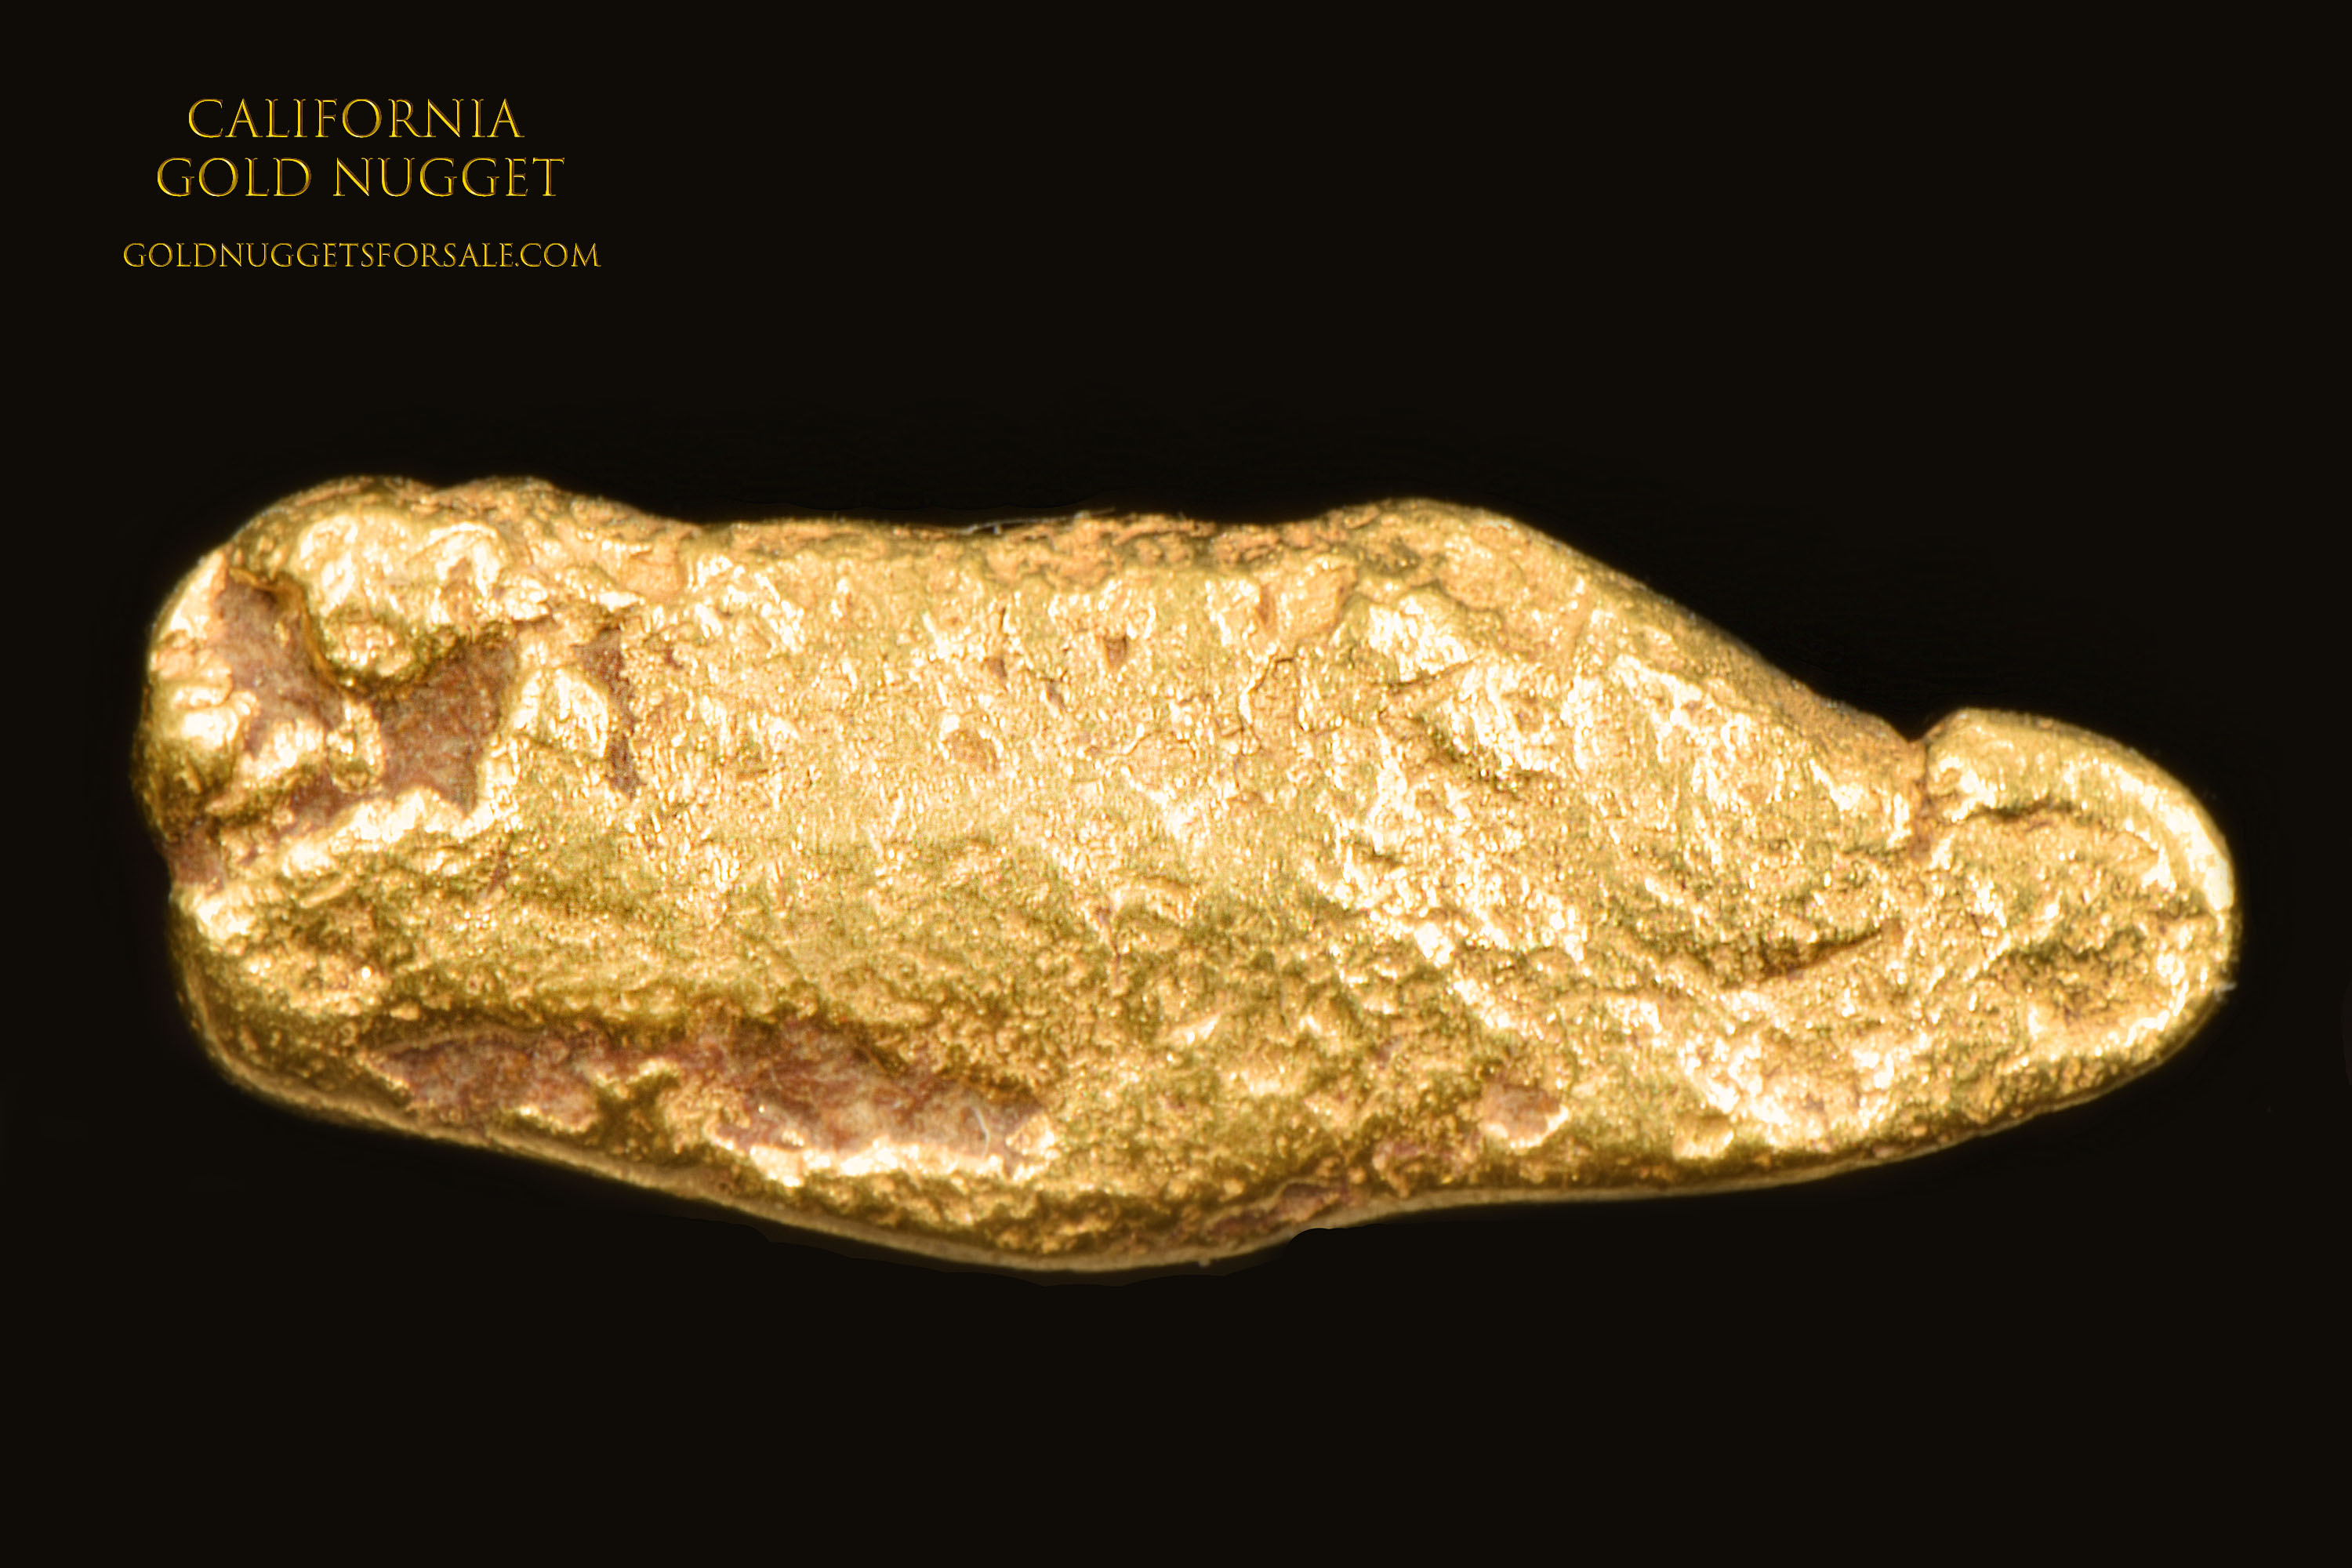 California Jewelry Grade Gold Nugget - Great Price